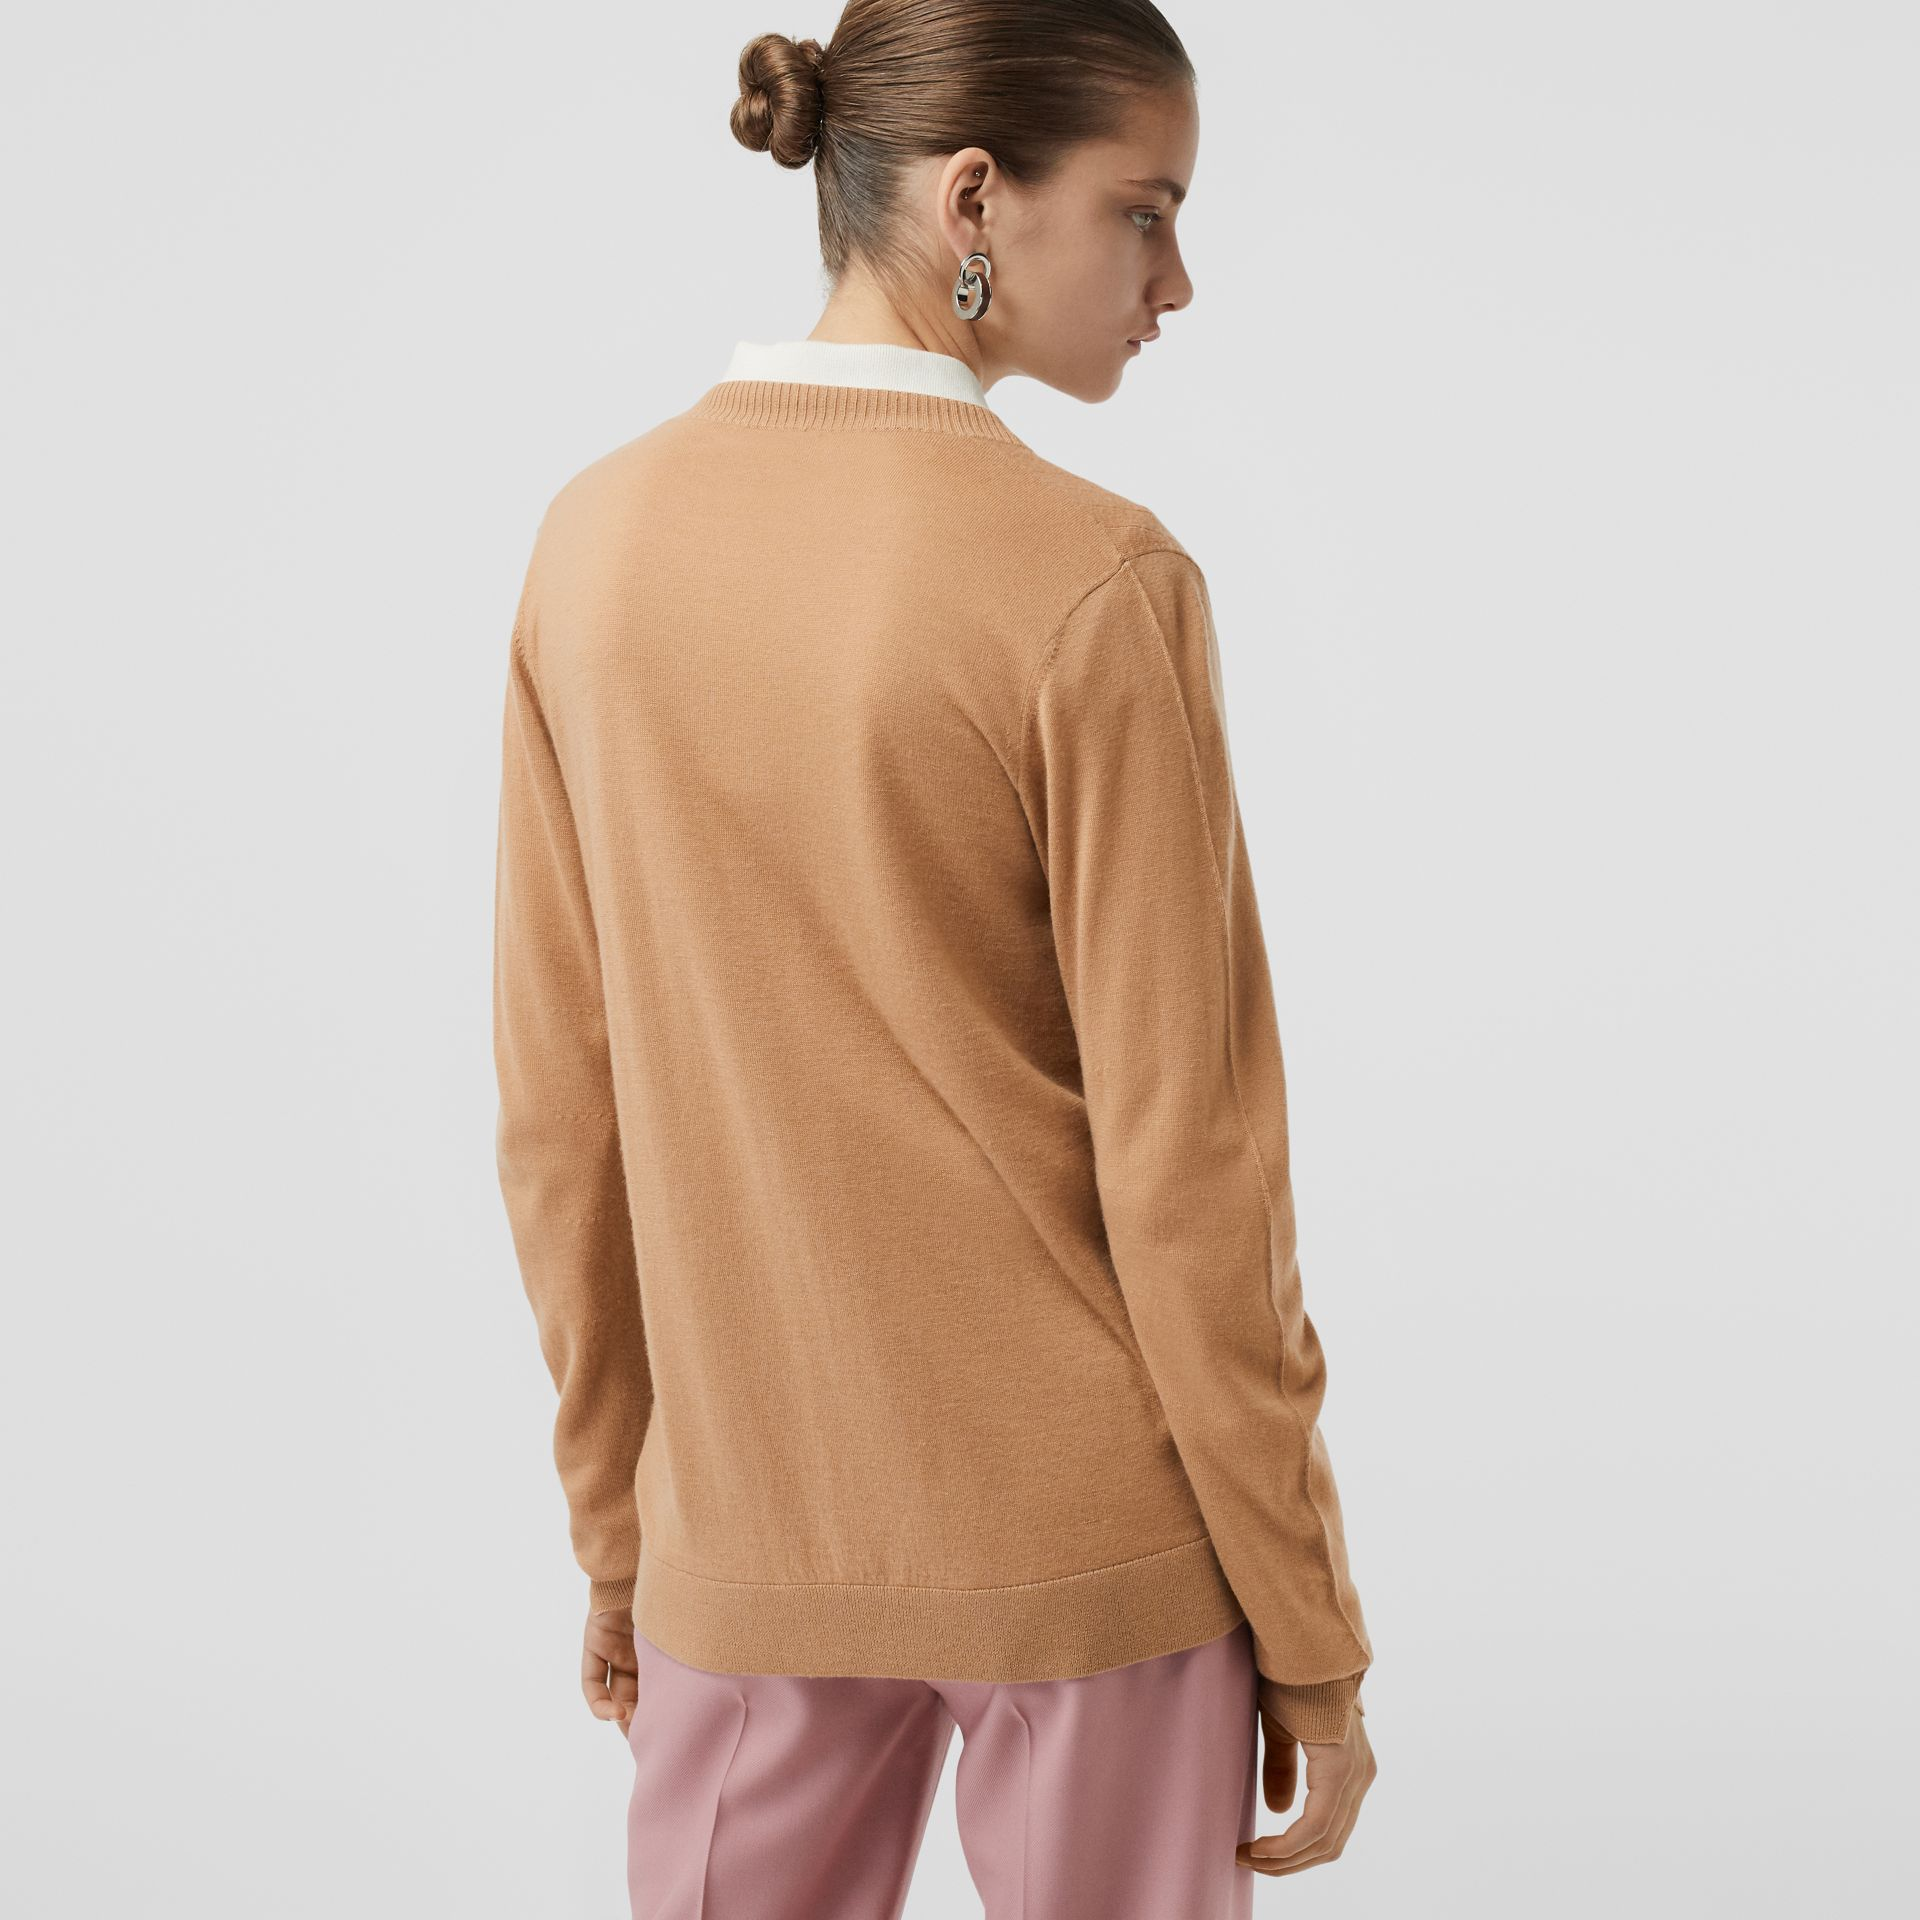 Rib Knit Cashmere Cardigan in Camel - Women | Burberry - gallery image 2